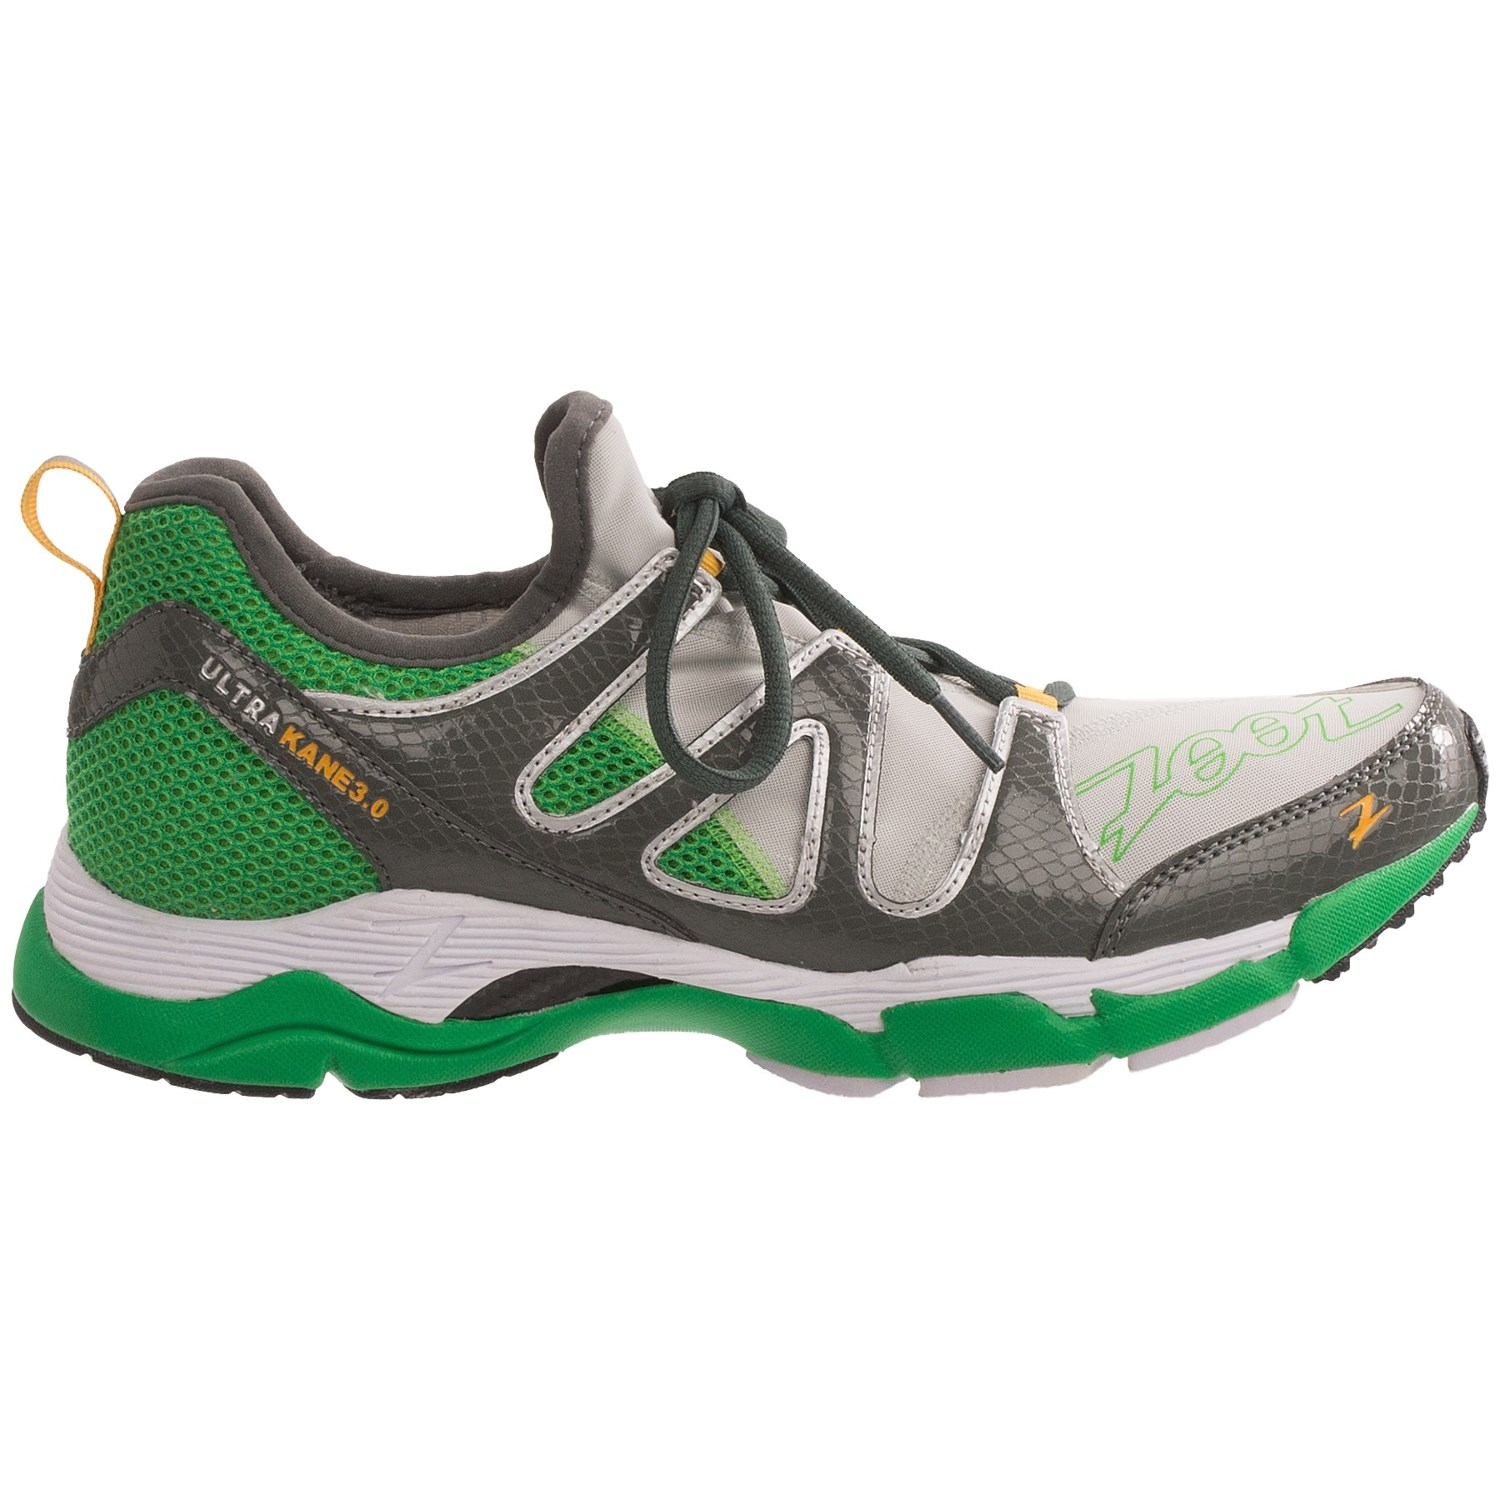 Zoot Shoes Review